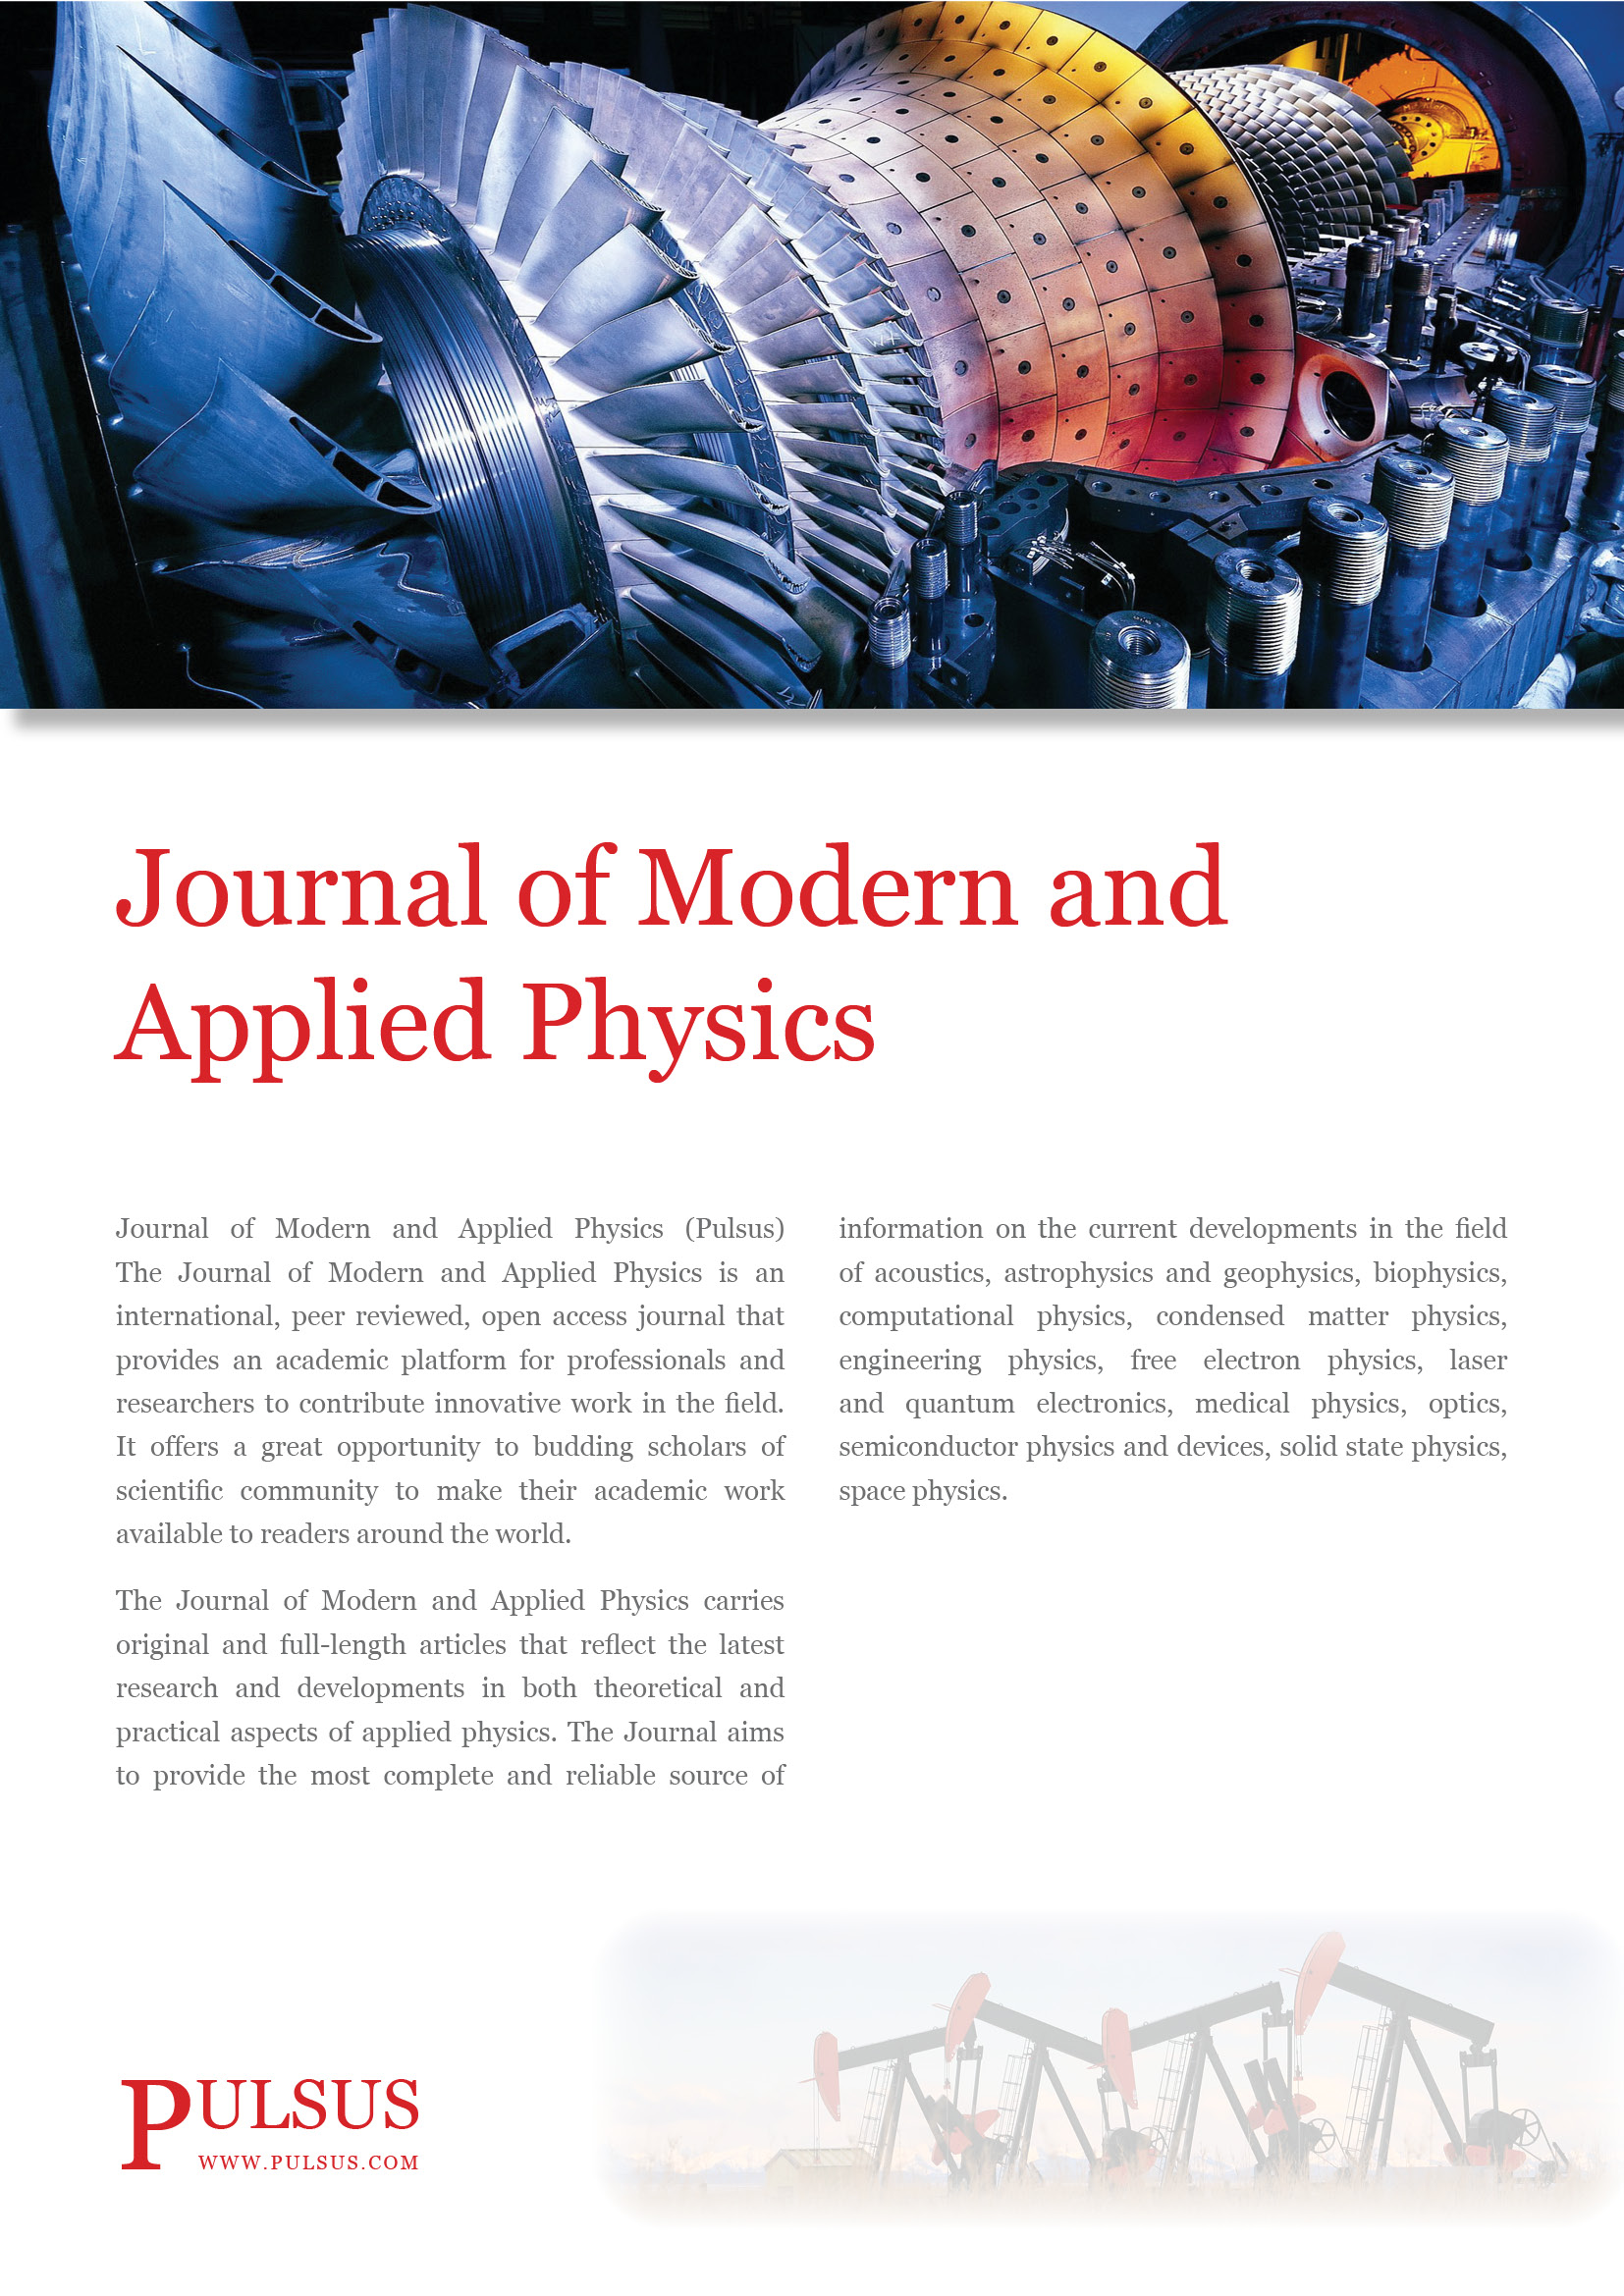 Journal of Modern and Applied Physics